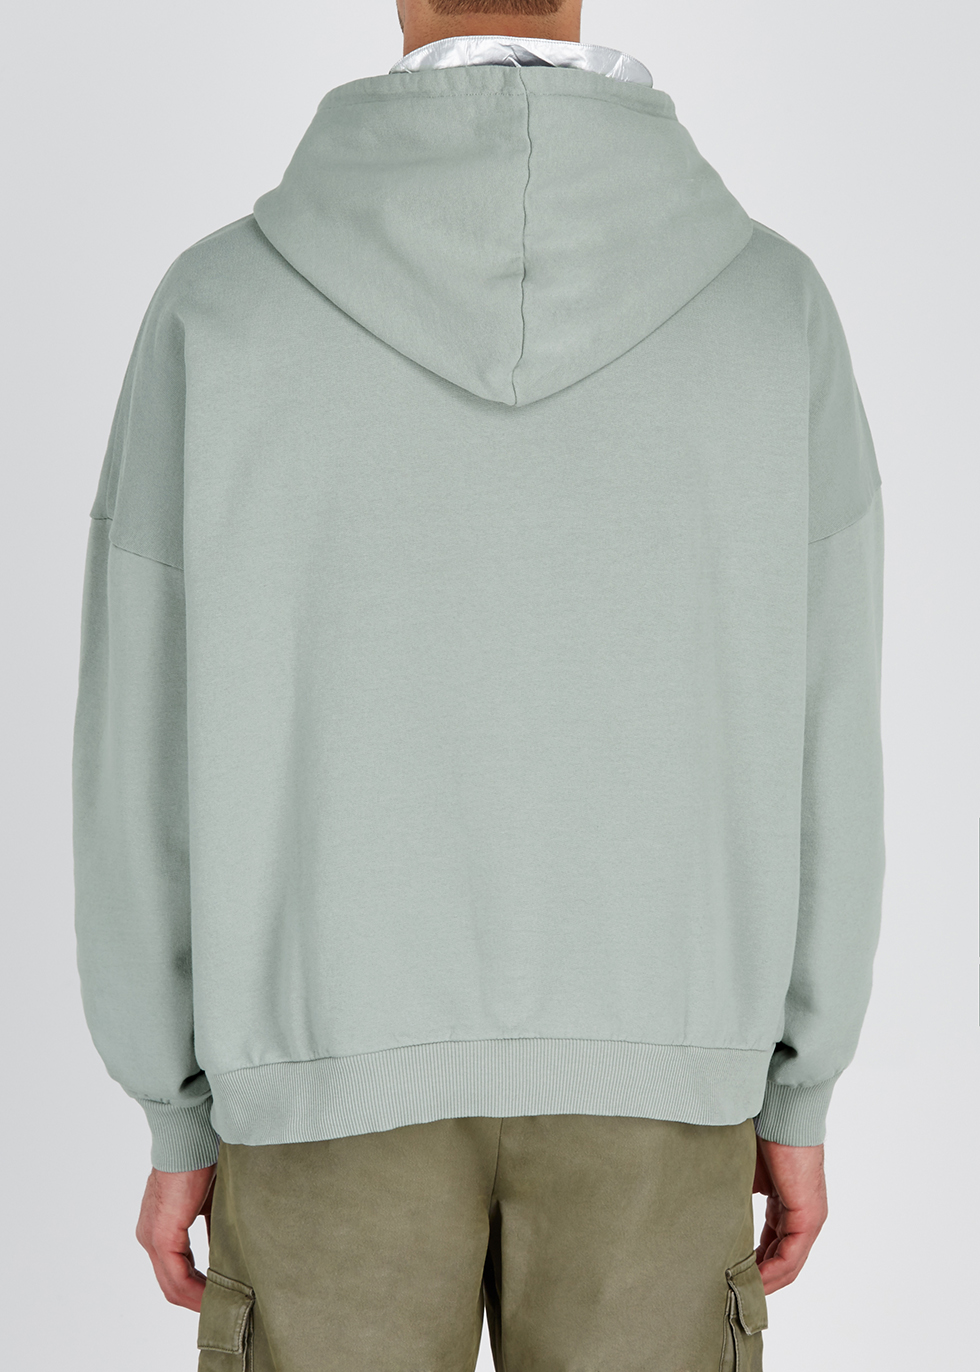 Grey cotton sweatshirt - Napa by Martine Rose